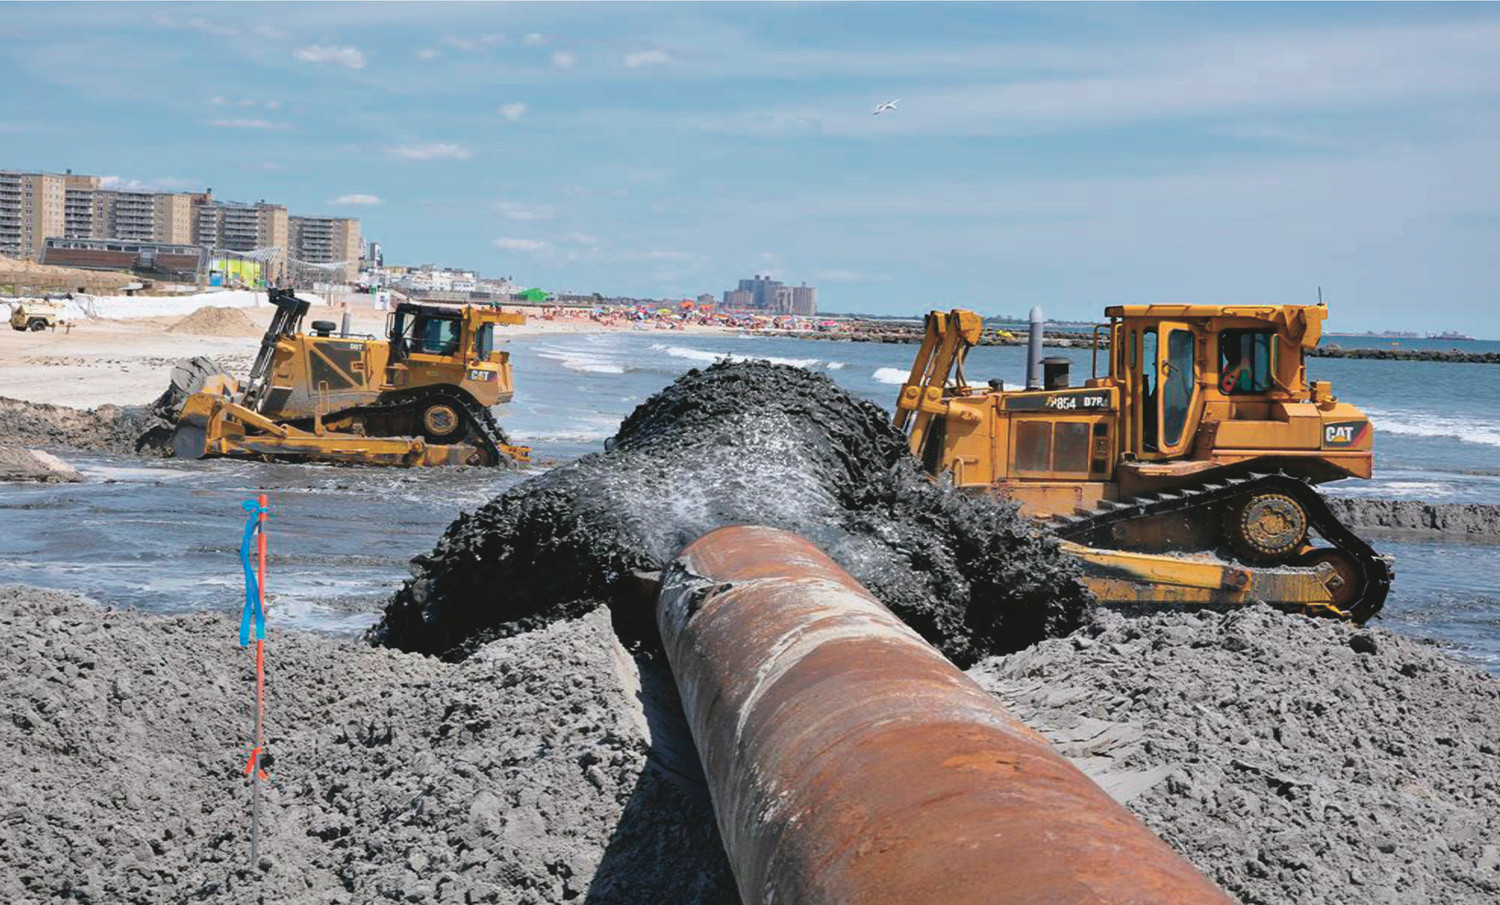 The Army Corps presented photos of a previous sand replenishment project in Rockaway Beach in 2013 that showed the process of hydraulically pumping sand onto the beach.